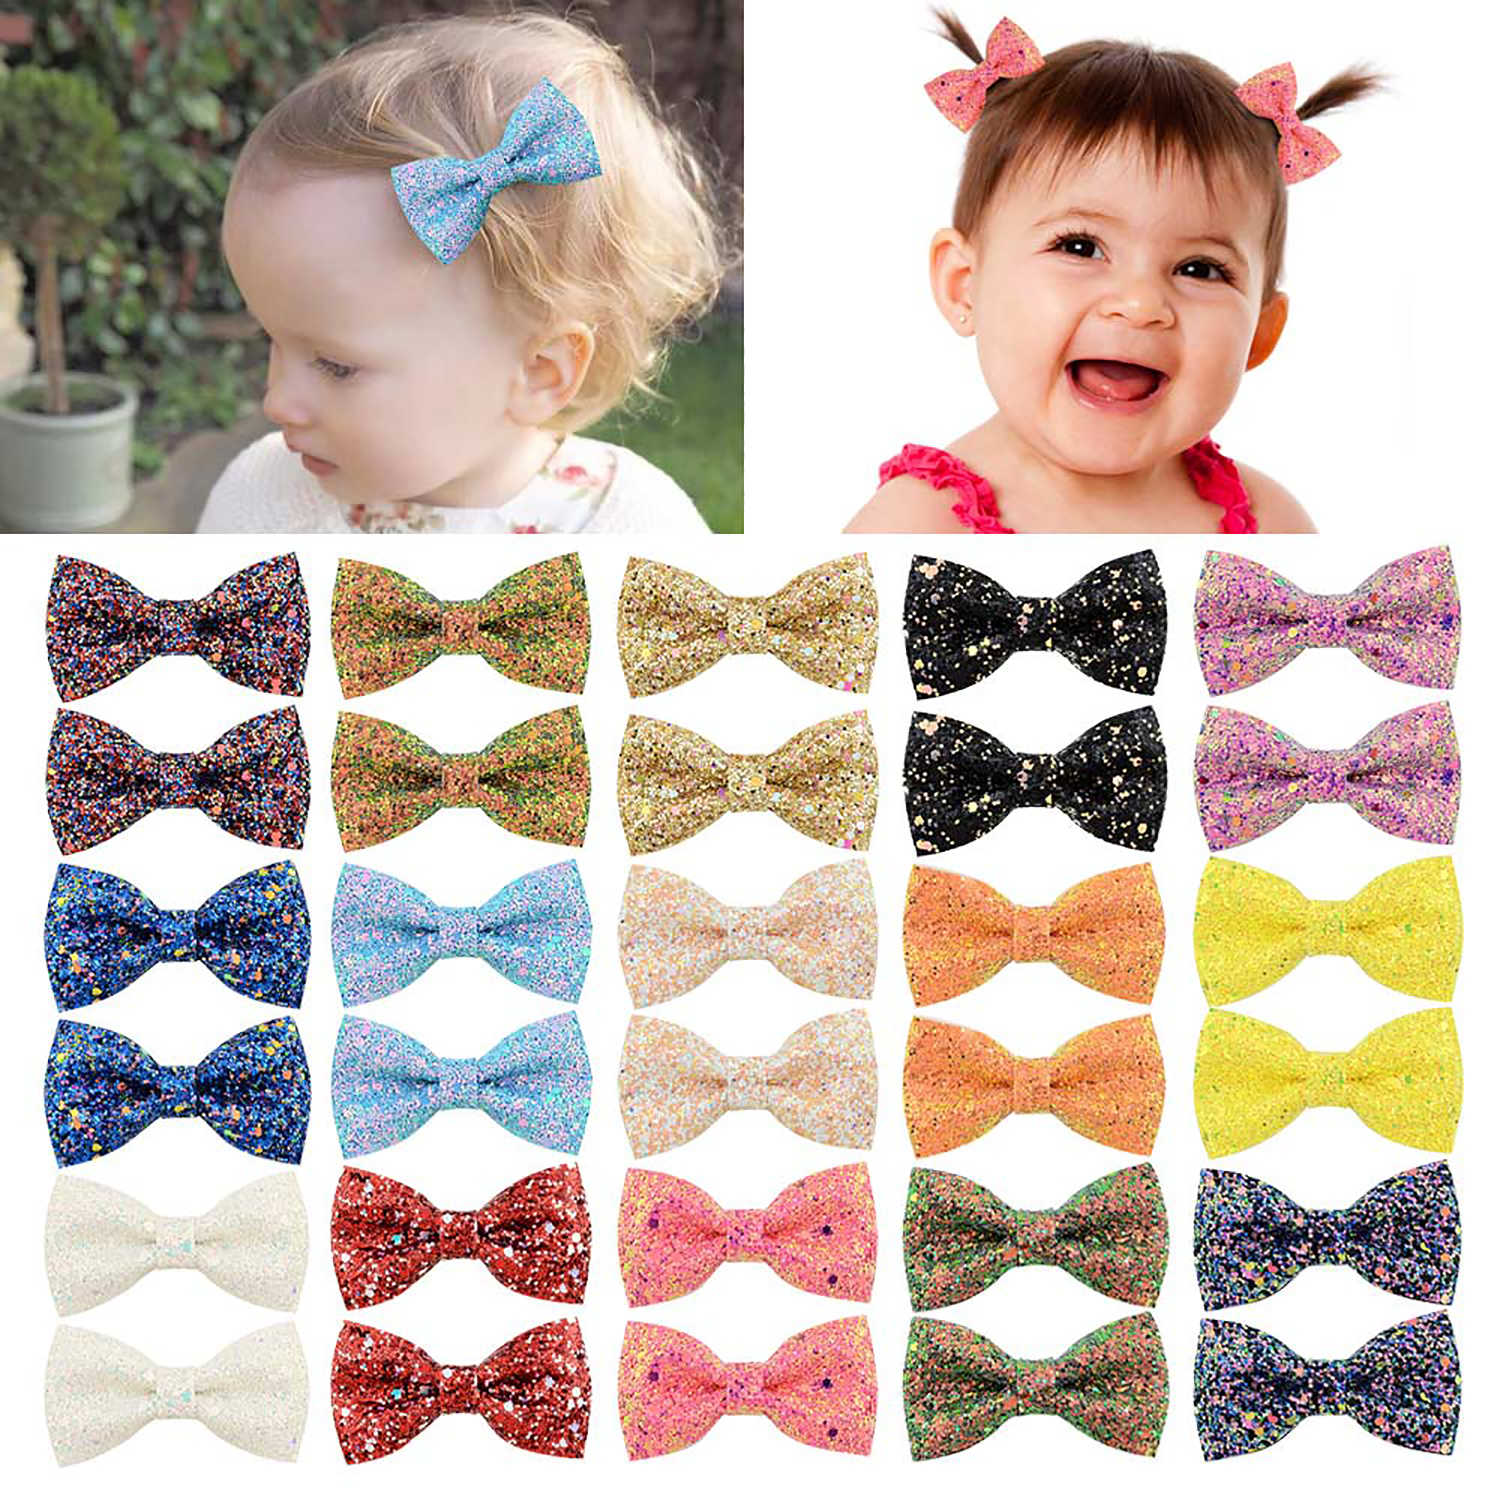 1Piece 3 Inch Glitter Hair Bows Boutique Hair Clips Multi Color Glitter Sequins Hair Bows For Baby Girls Teens Toddlers 909